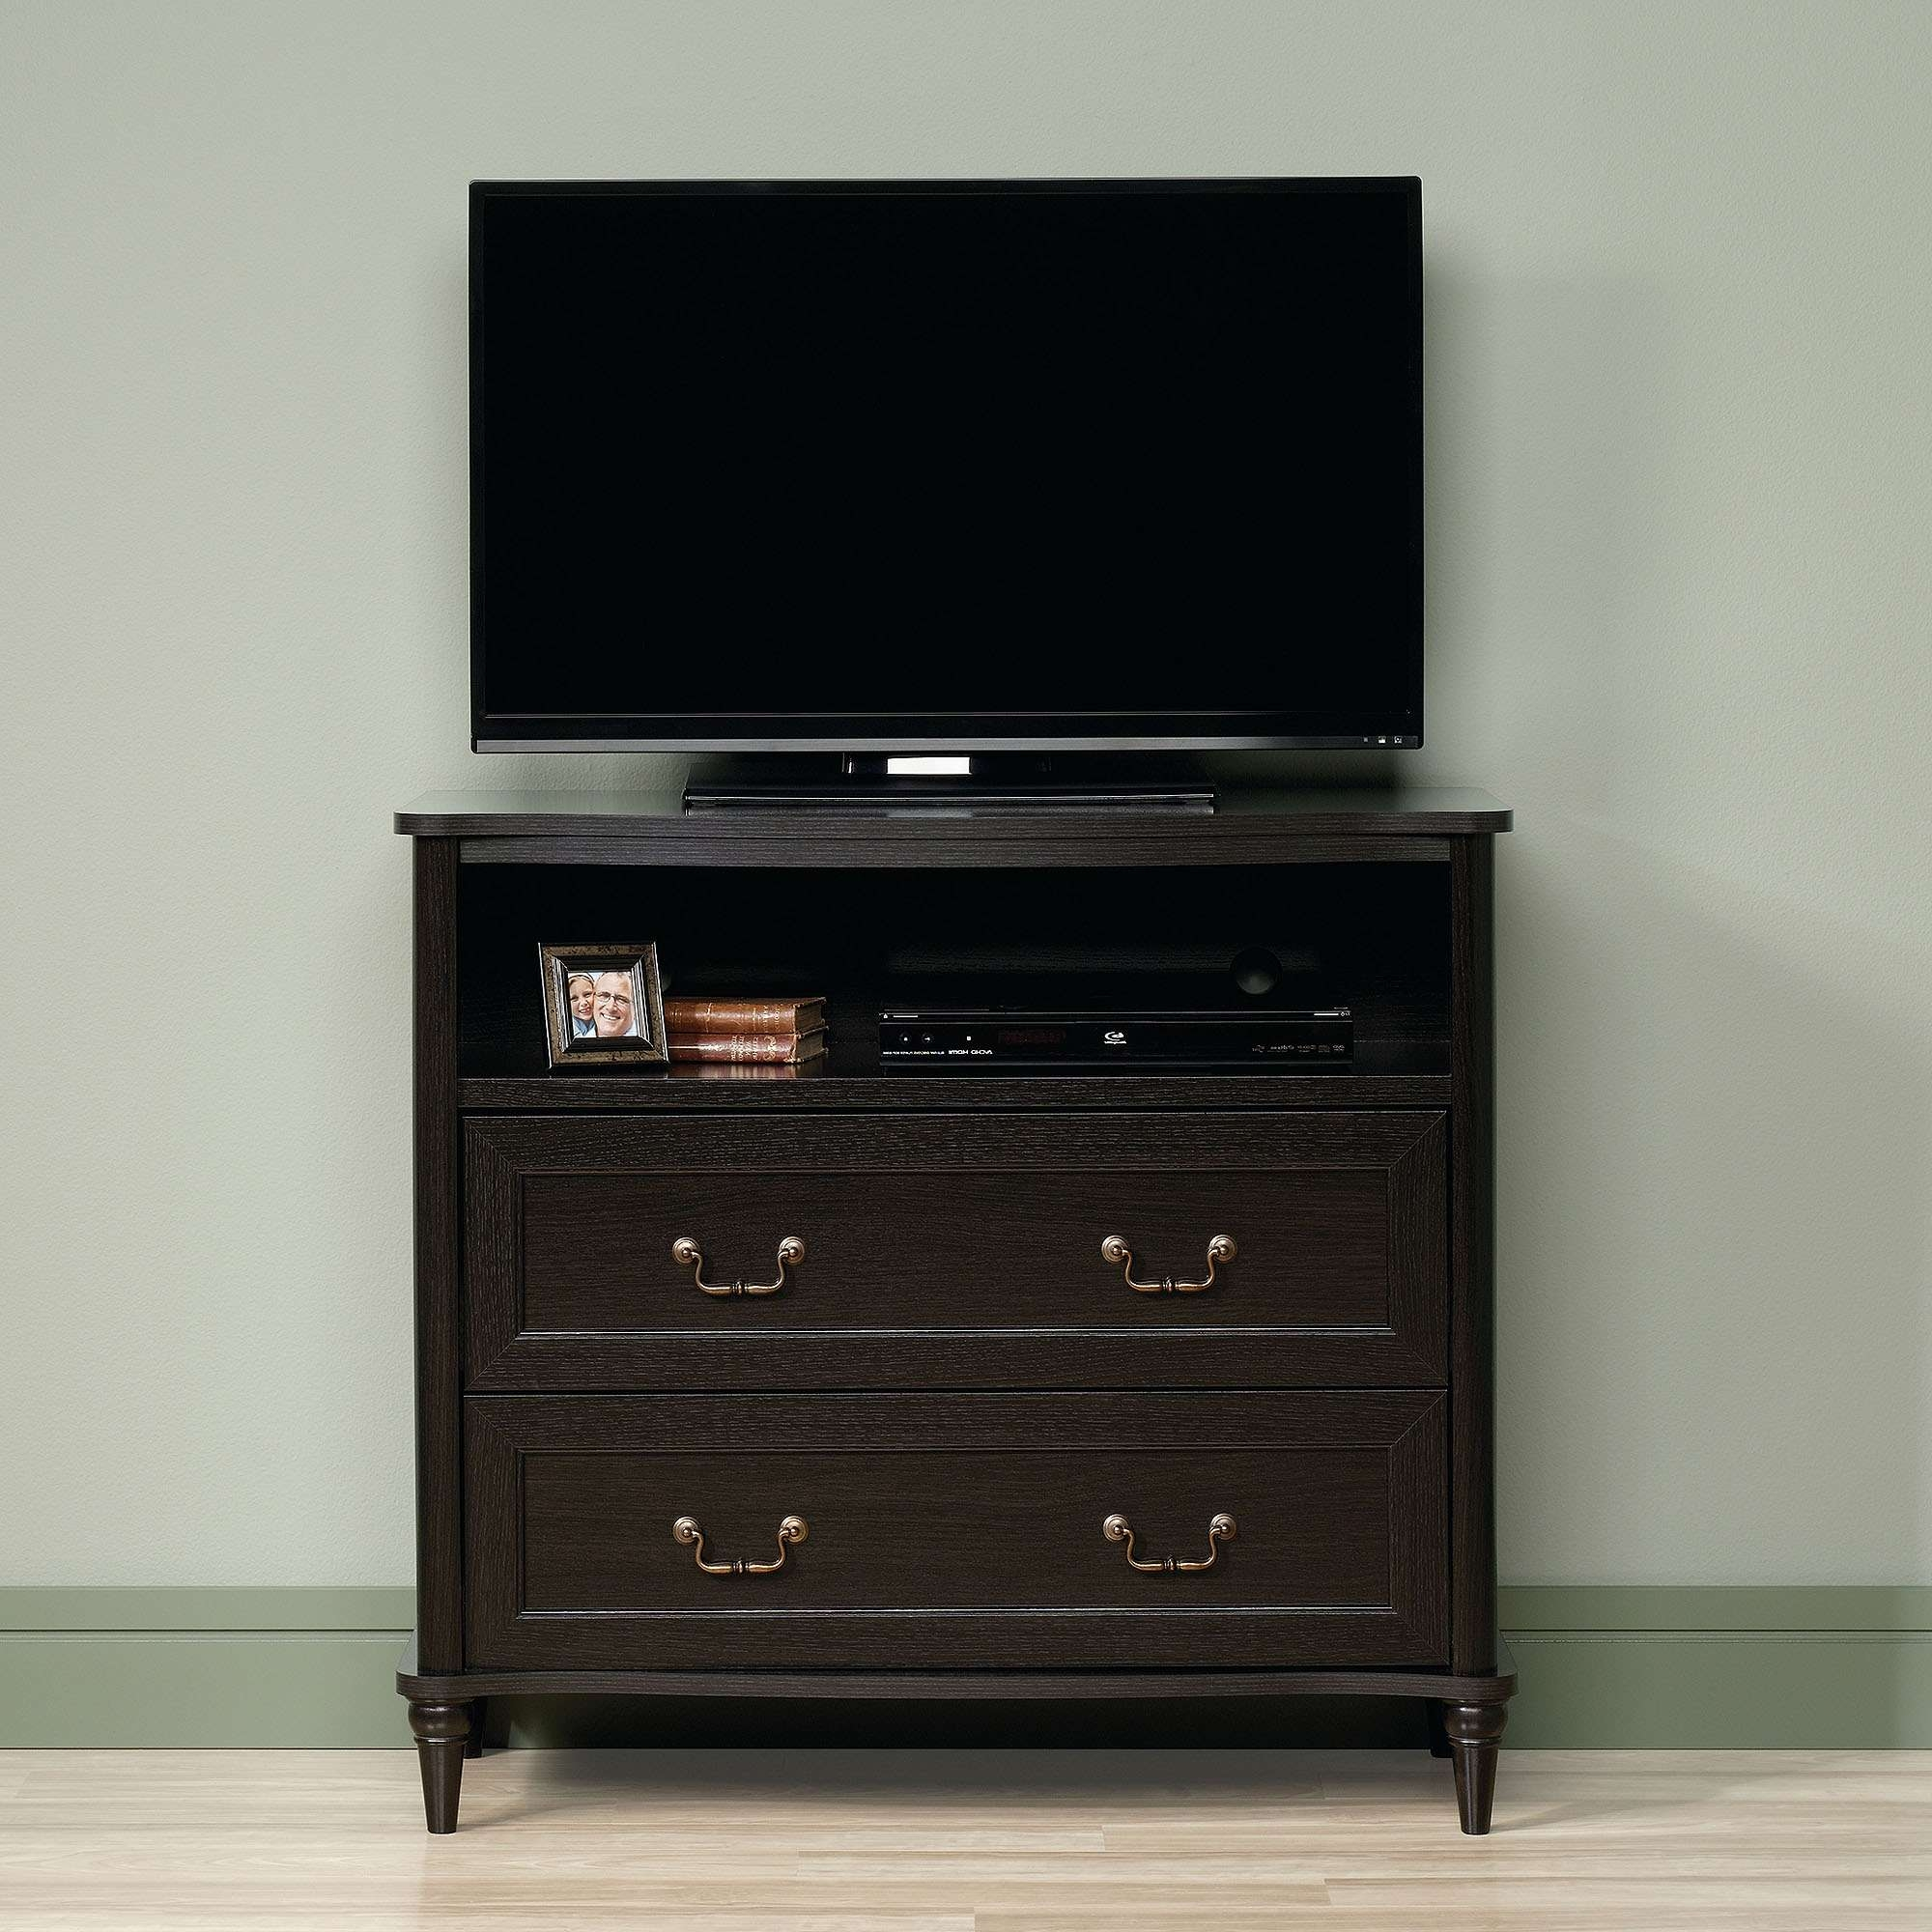 Sauder Wakefield Wind Oak Highboy Tv Stand For Tvs Up To 42 With Regard To Highboy Tv Stands (View 15 of 15)